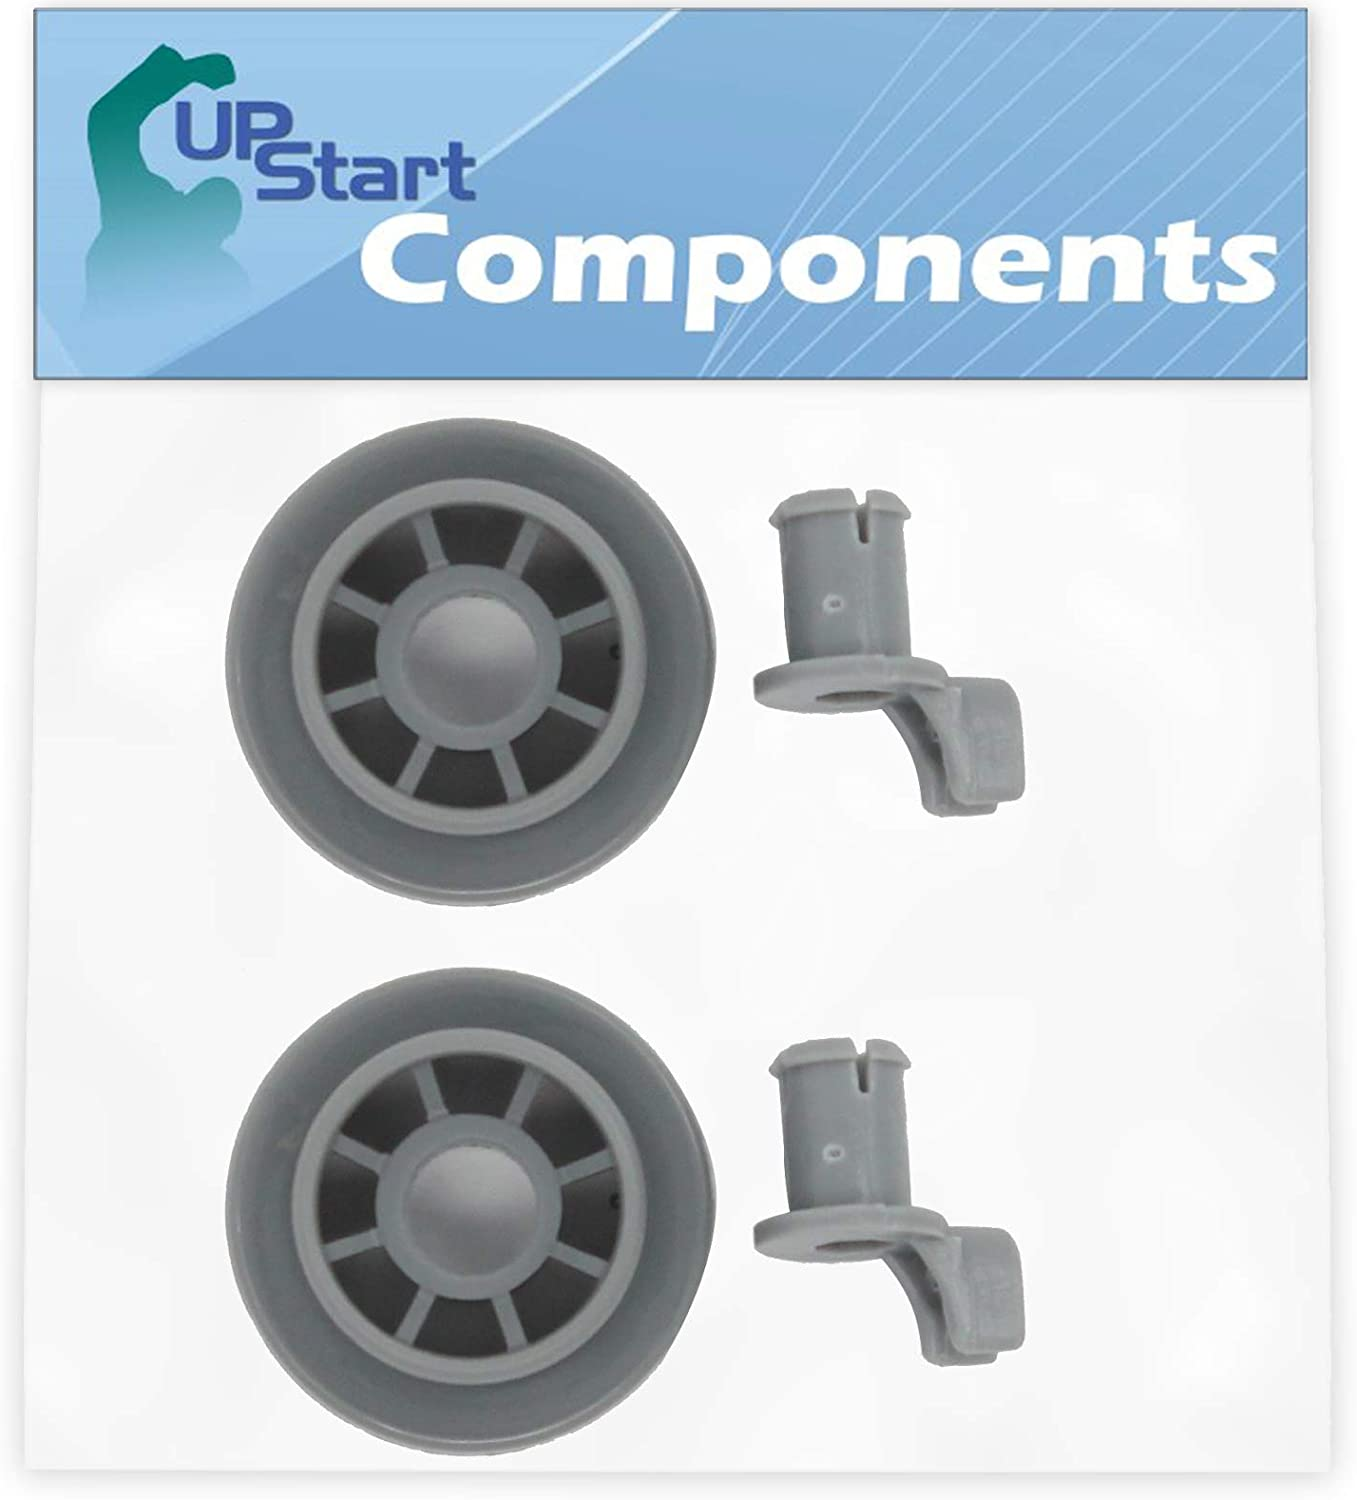 2-Pack 165314 Dishwasher Lower Dishrack Wheel Replacement for Bosch SHE4AM12UC/01 Dishwasher - Compatible with 00165314 Lower Rack Roller - UpStart Components Brand